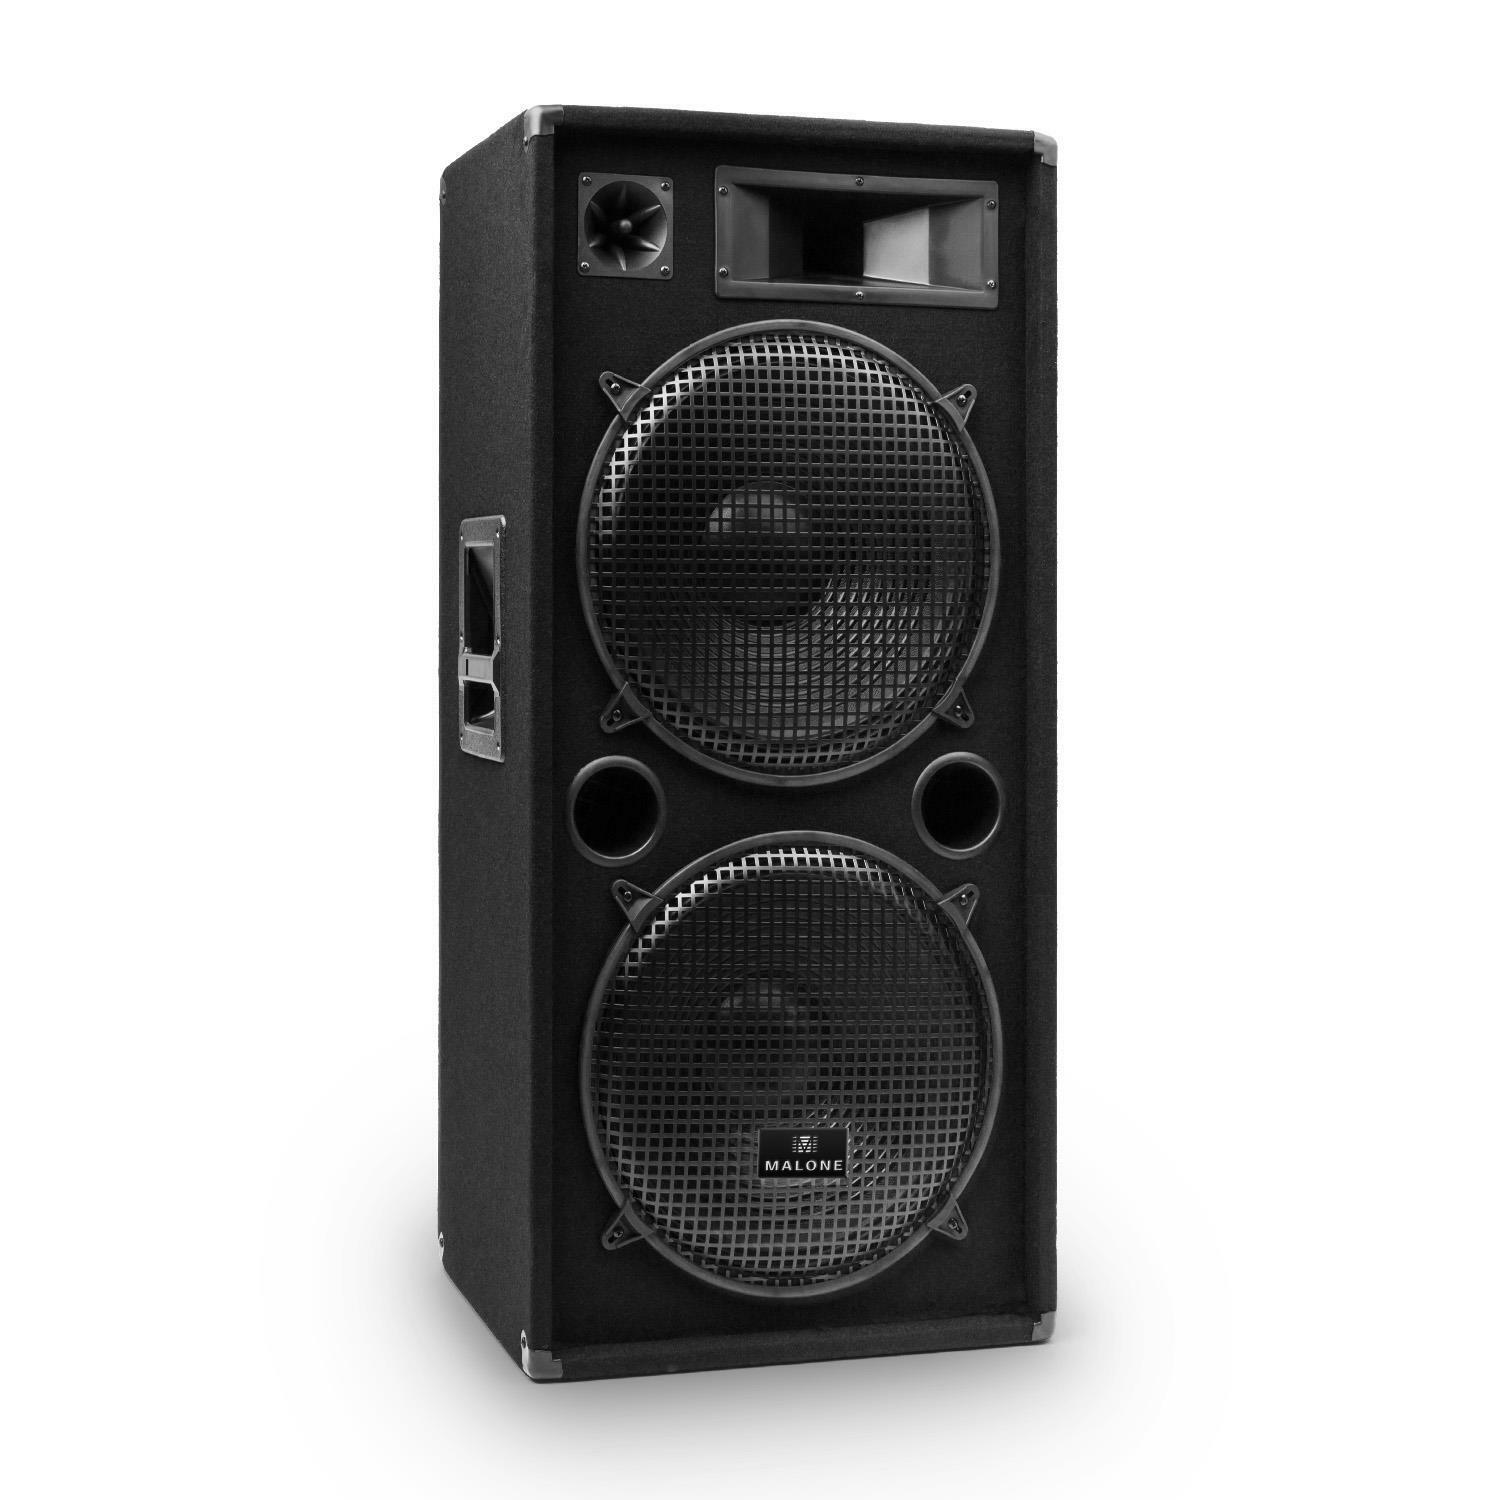 top enceinte sono audio dj pa disco 2 etages 3 voies 2x subwoofer 15 38cm 1500w eur 129 99. Black Bedroom Furniture Sets. Home Design Ideas